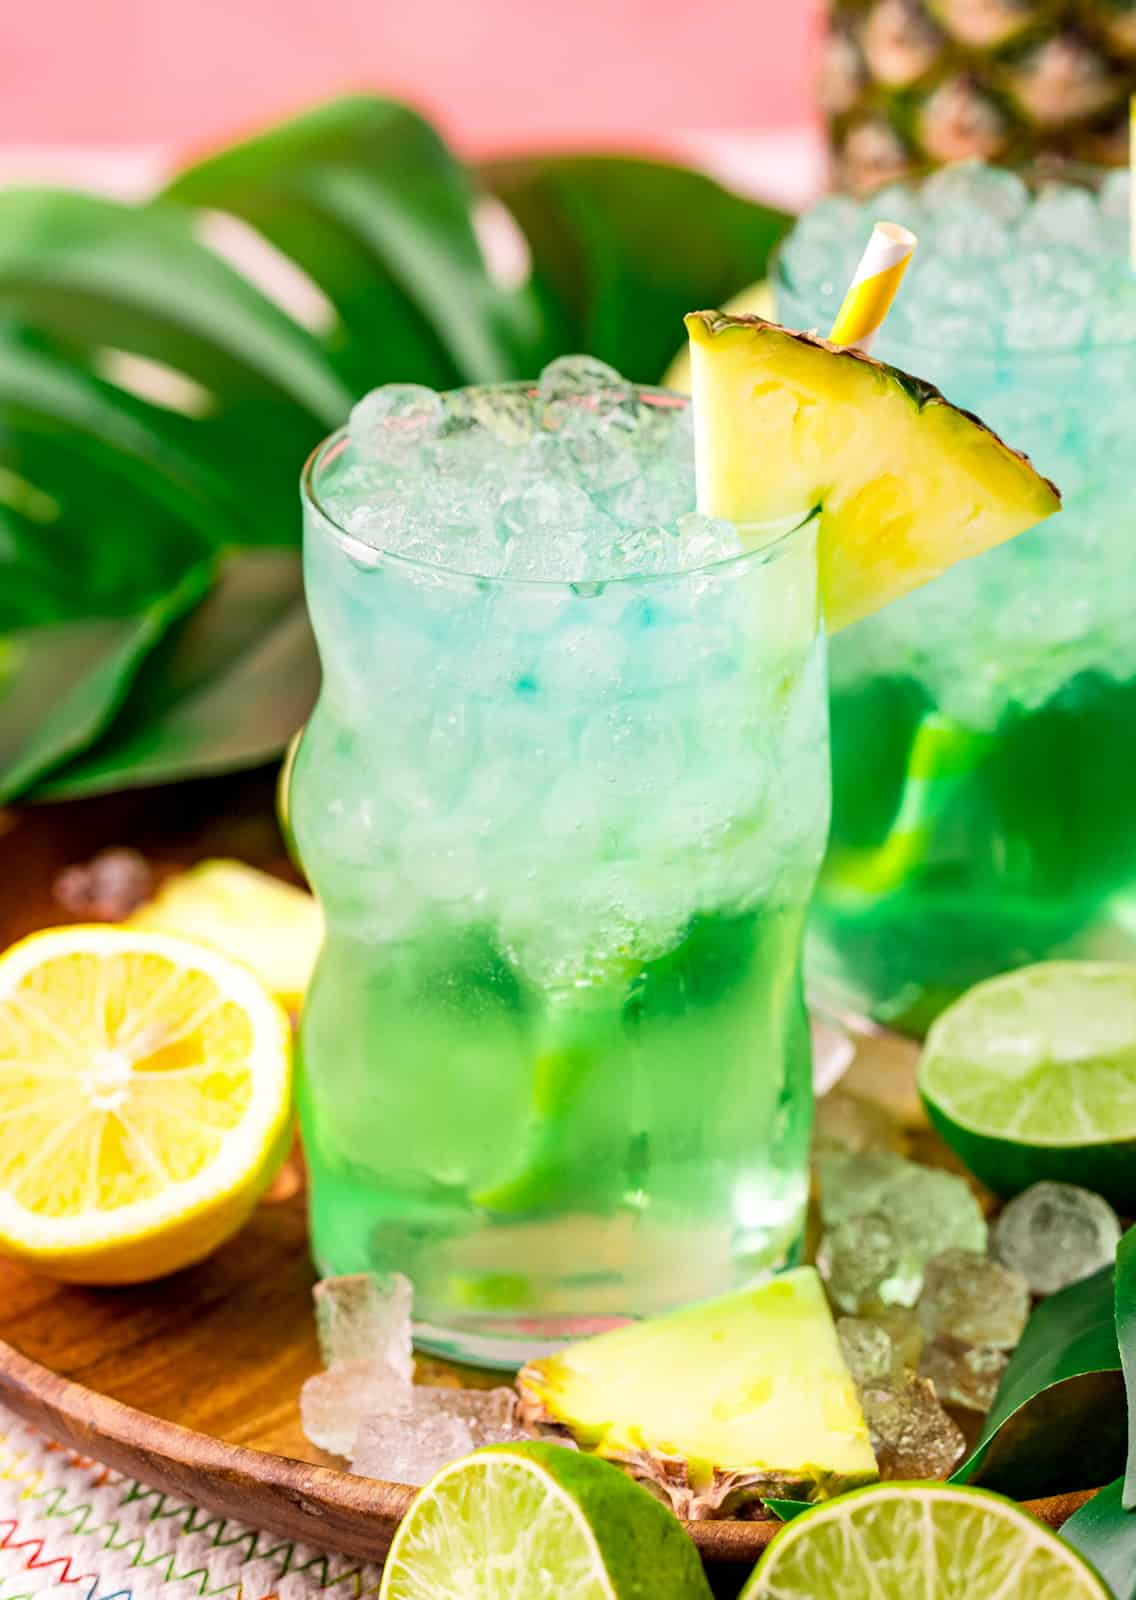 Baja Blast in glass with ice, straw and pineapple slice